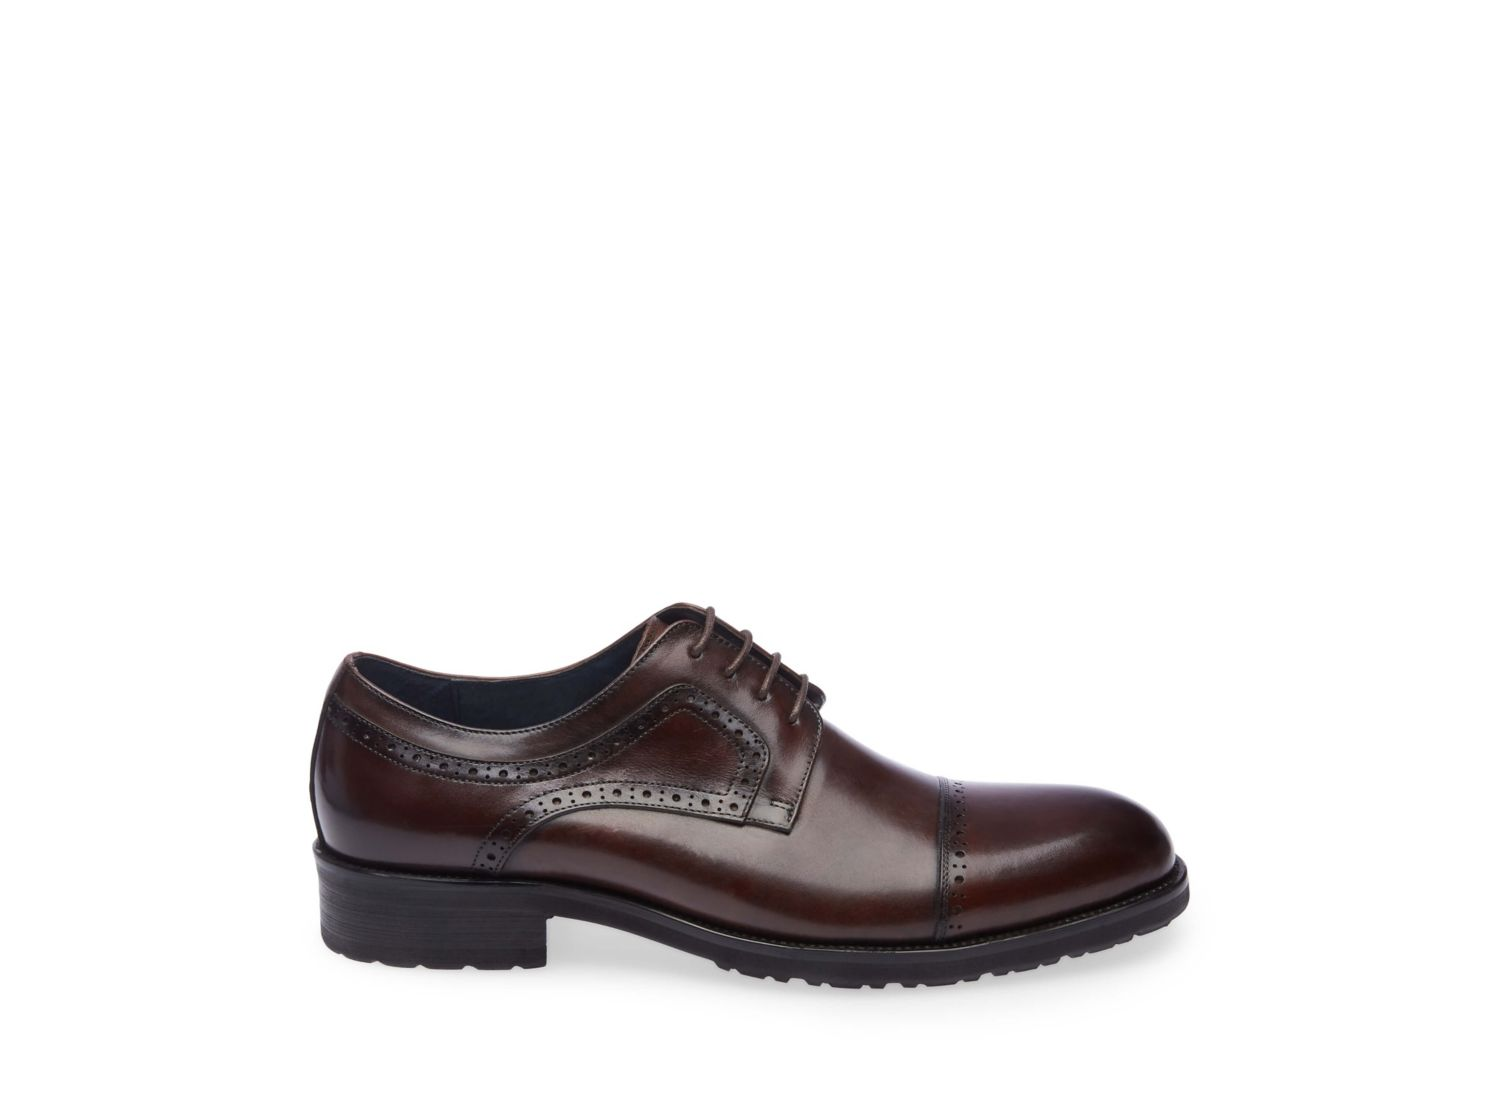 WEBBER BROWN LEATHER - Steve Madden